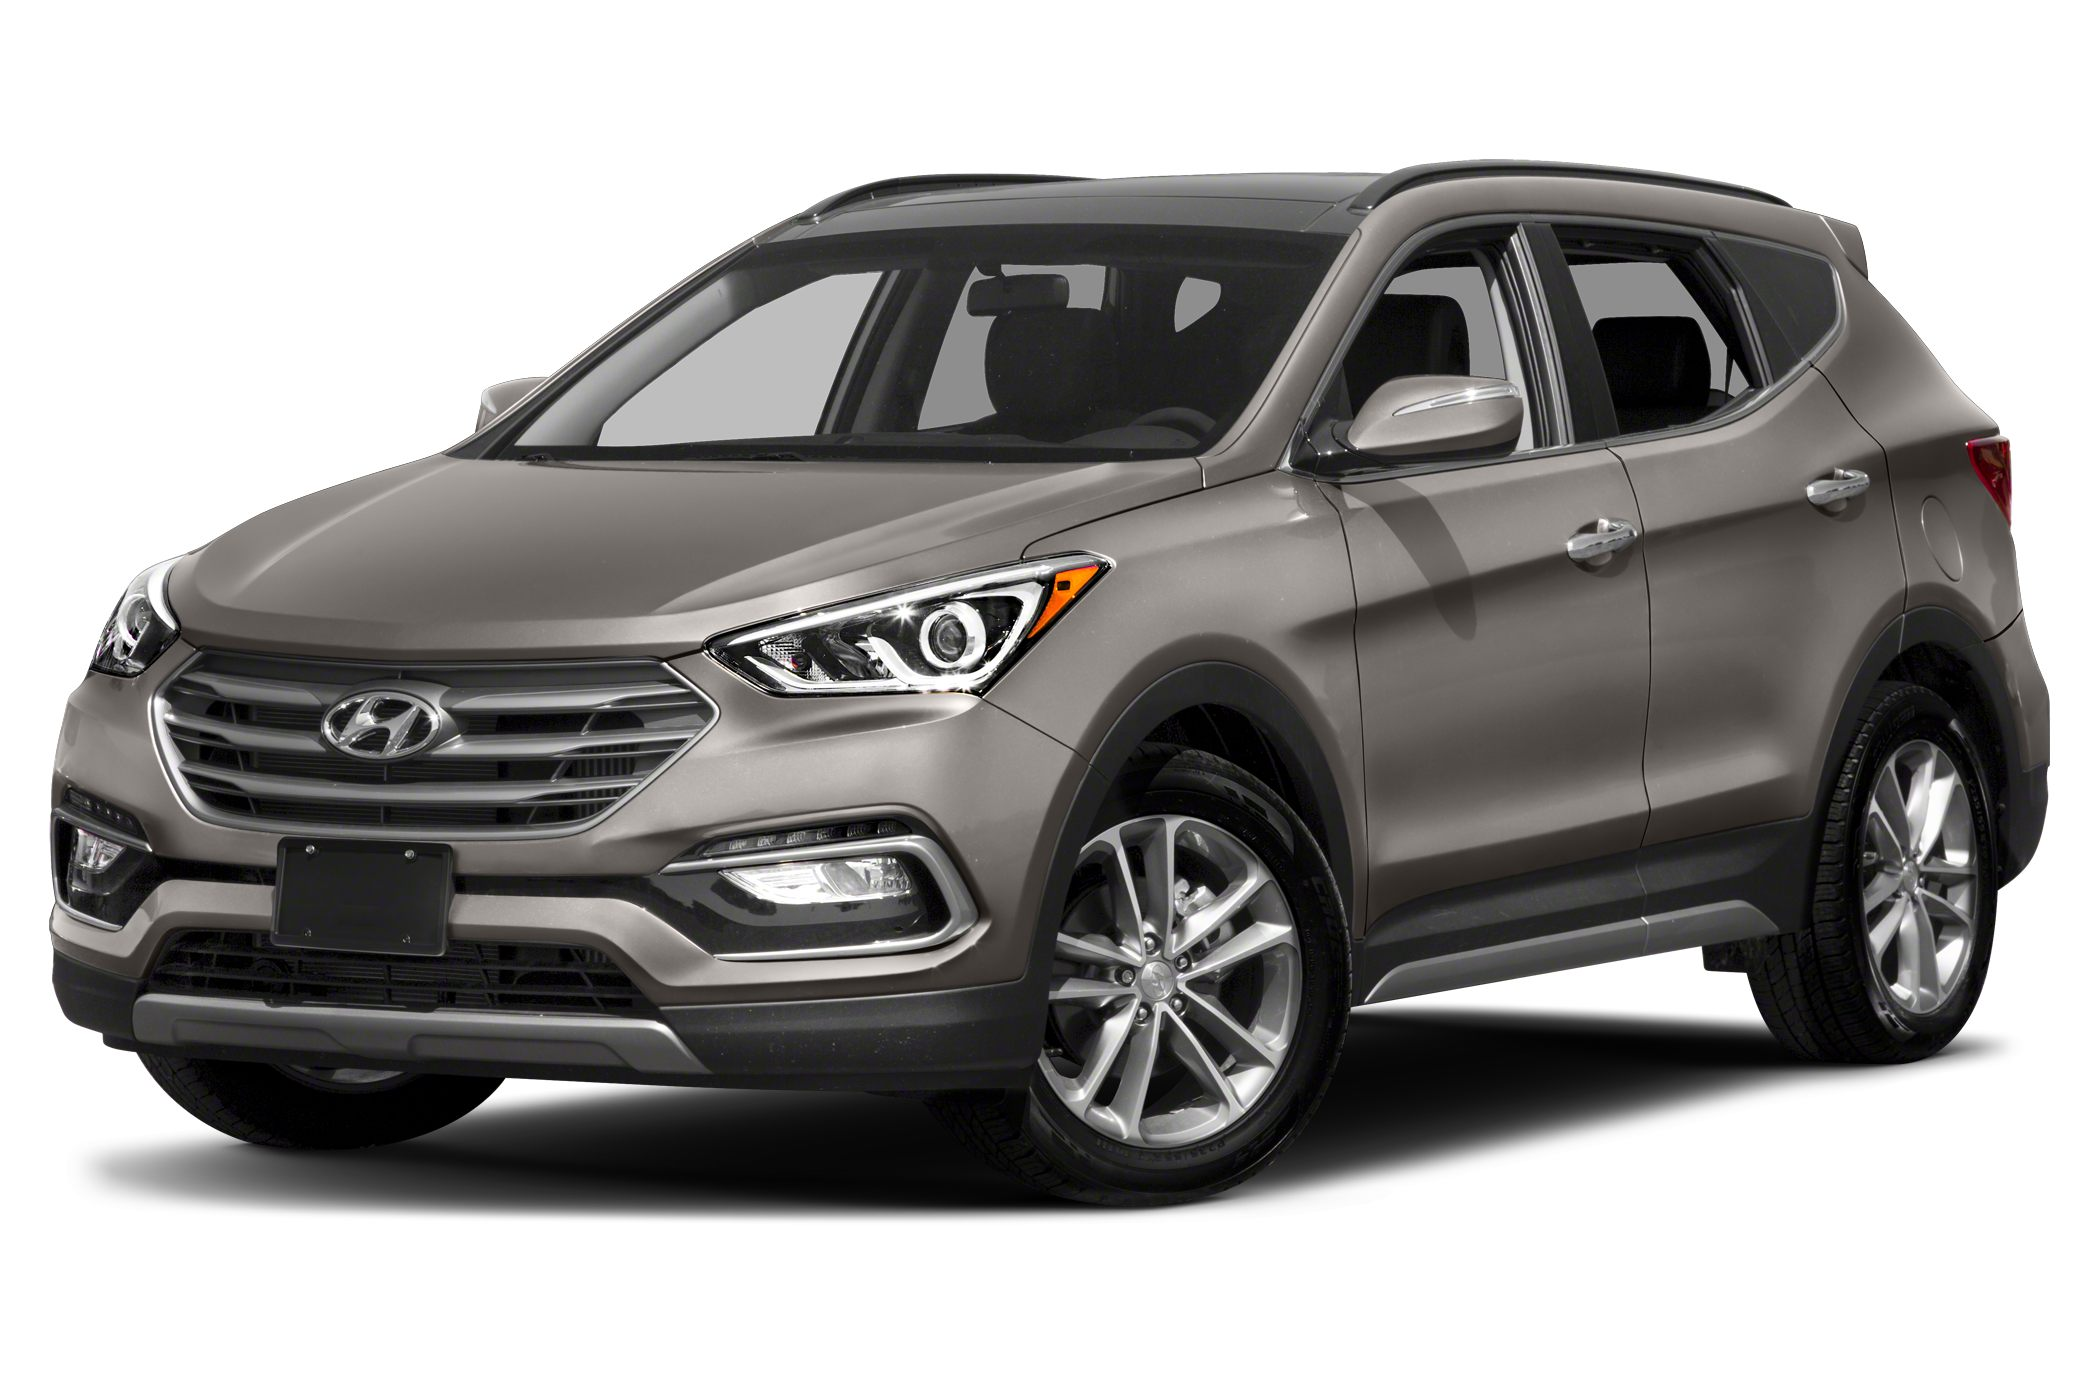 Hyundai Canada Incentives for the new 2018 Hyundai Santa Fe Sport Crossover SUV in Milton, Toronto, and the GTA